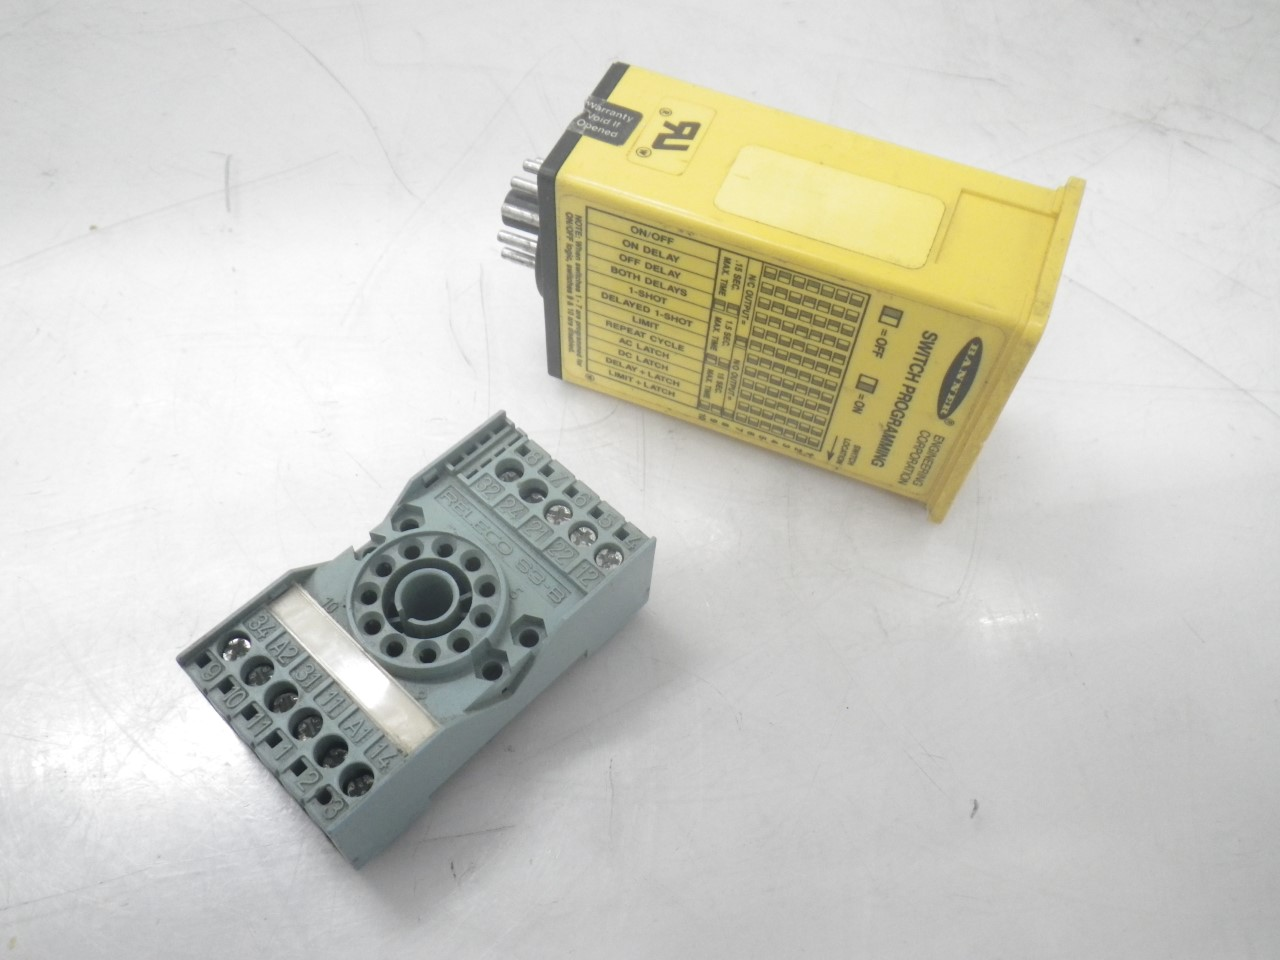 IMGP8439CL5A Banner Sensor Logic Module; MAXI-AMP+S3-B Releco Relay Socket (Used Tested) (13)